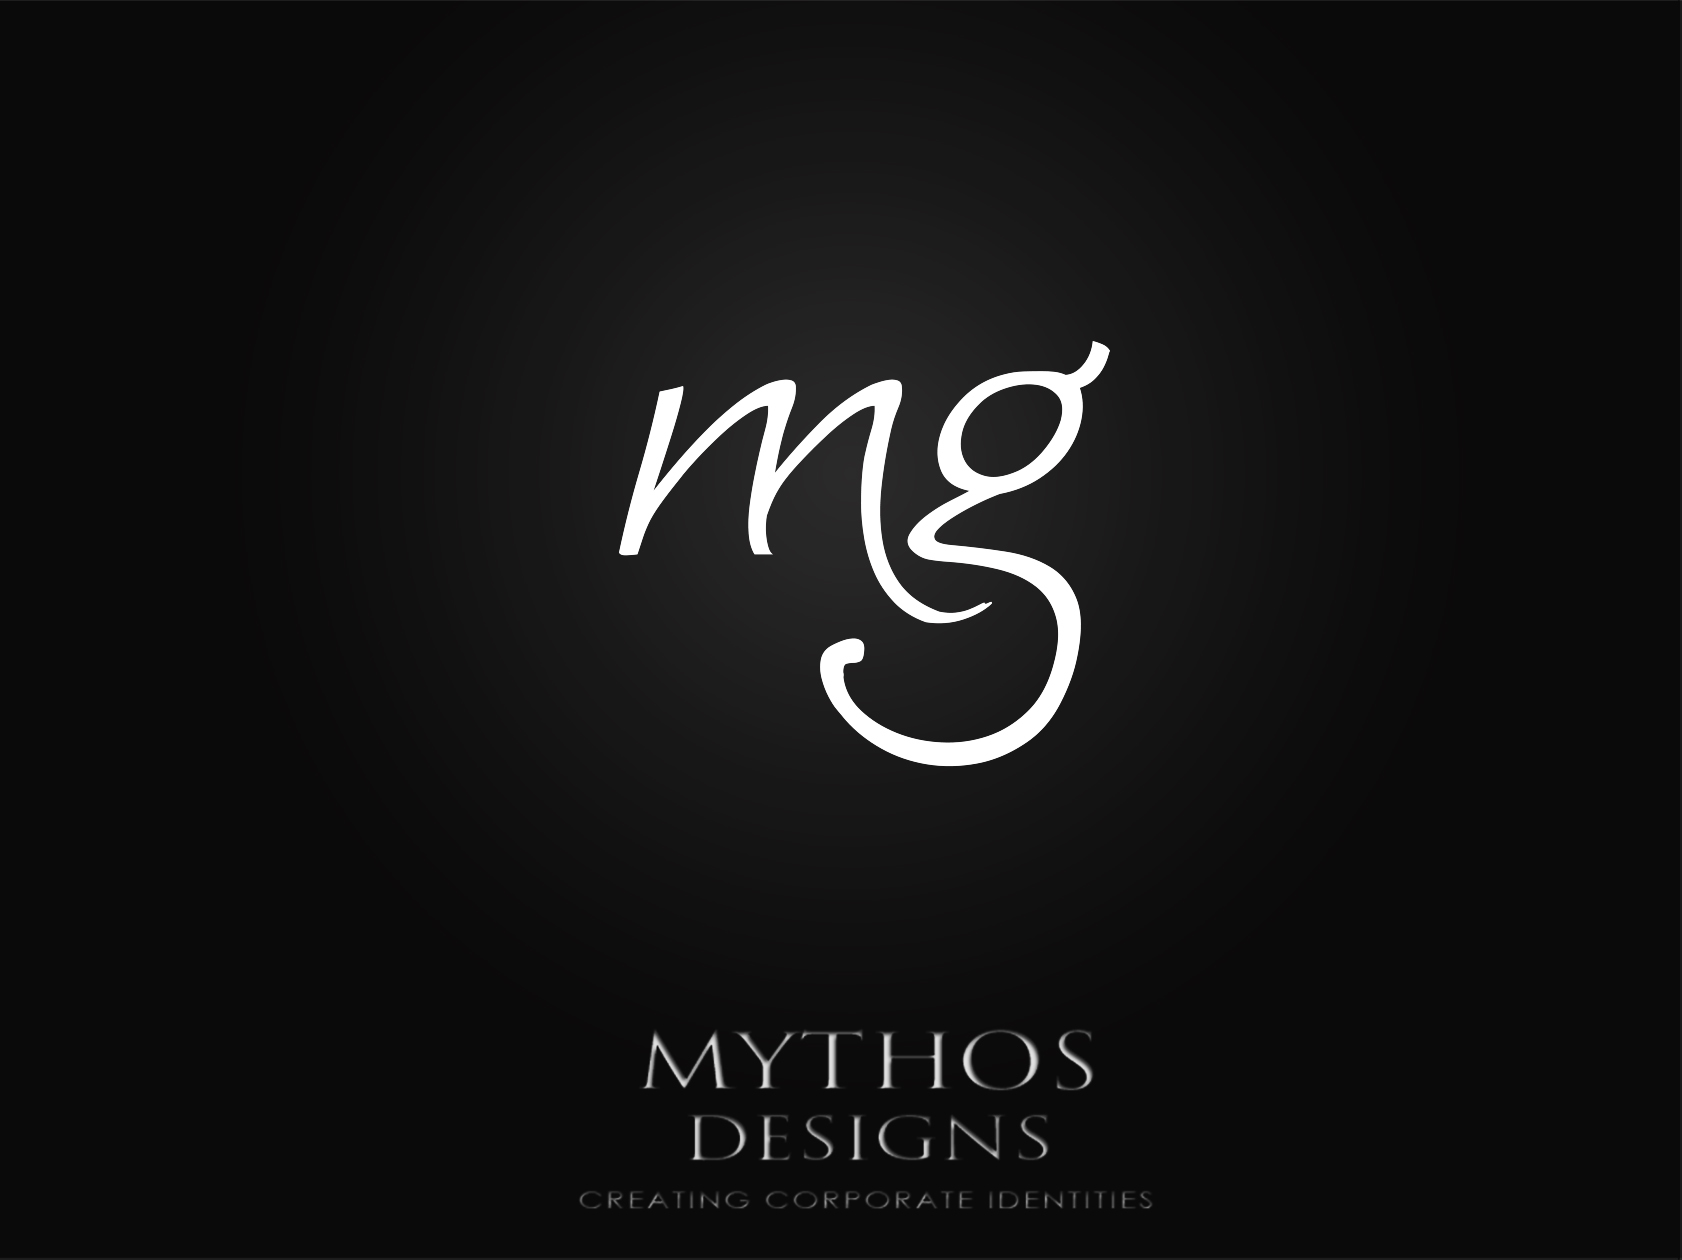 Custom Design by Mythos Designs - Entry No. 26 in the Custom Design Contest Imaginative Custom Design for MG.